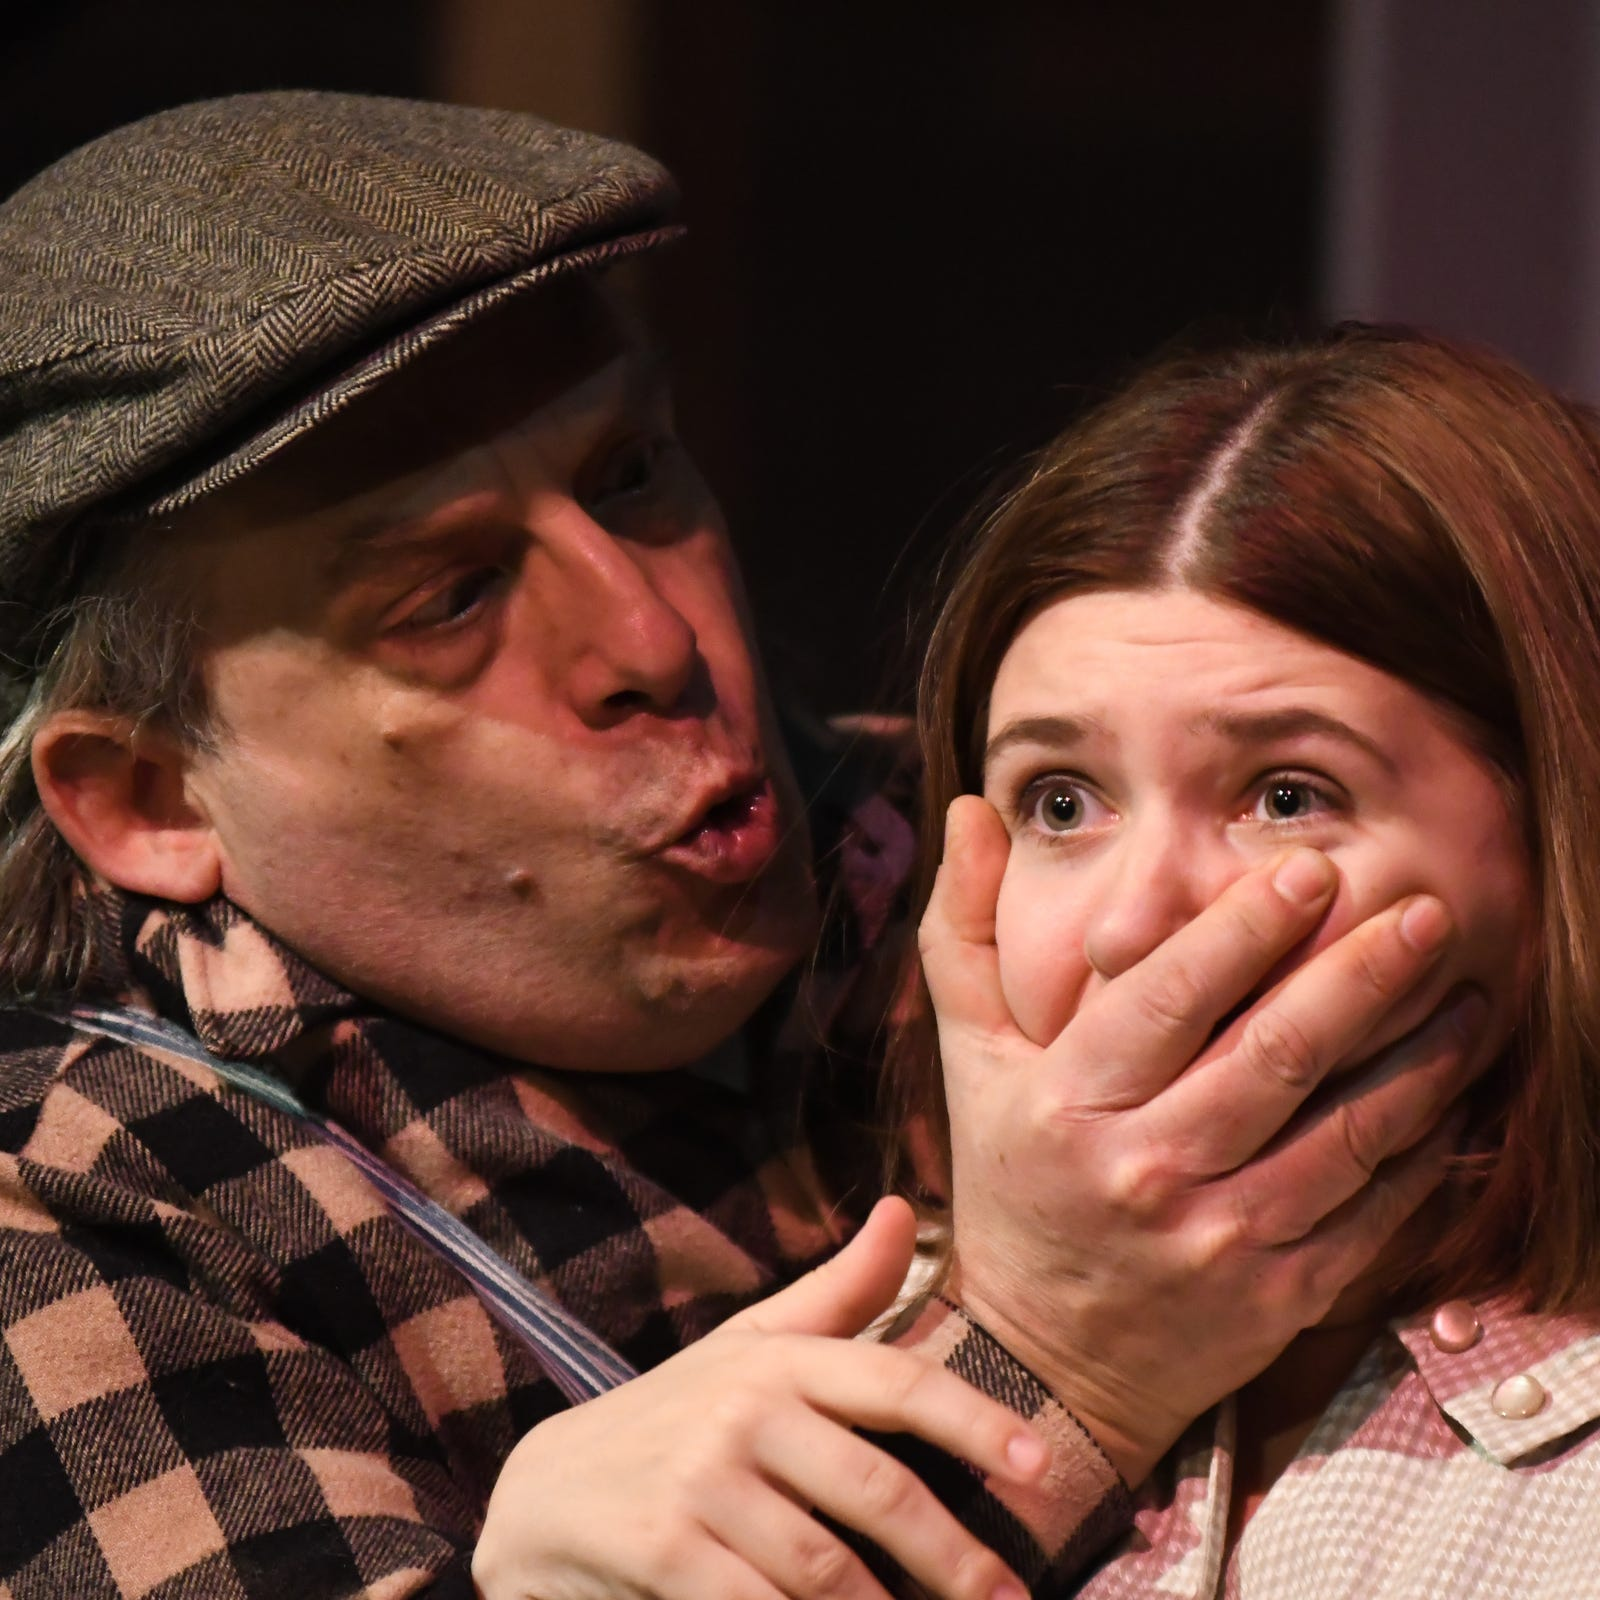 Riverfront Playhouse stages another Steinbeck classic